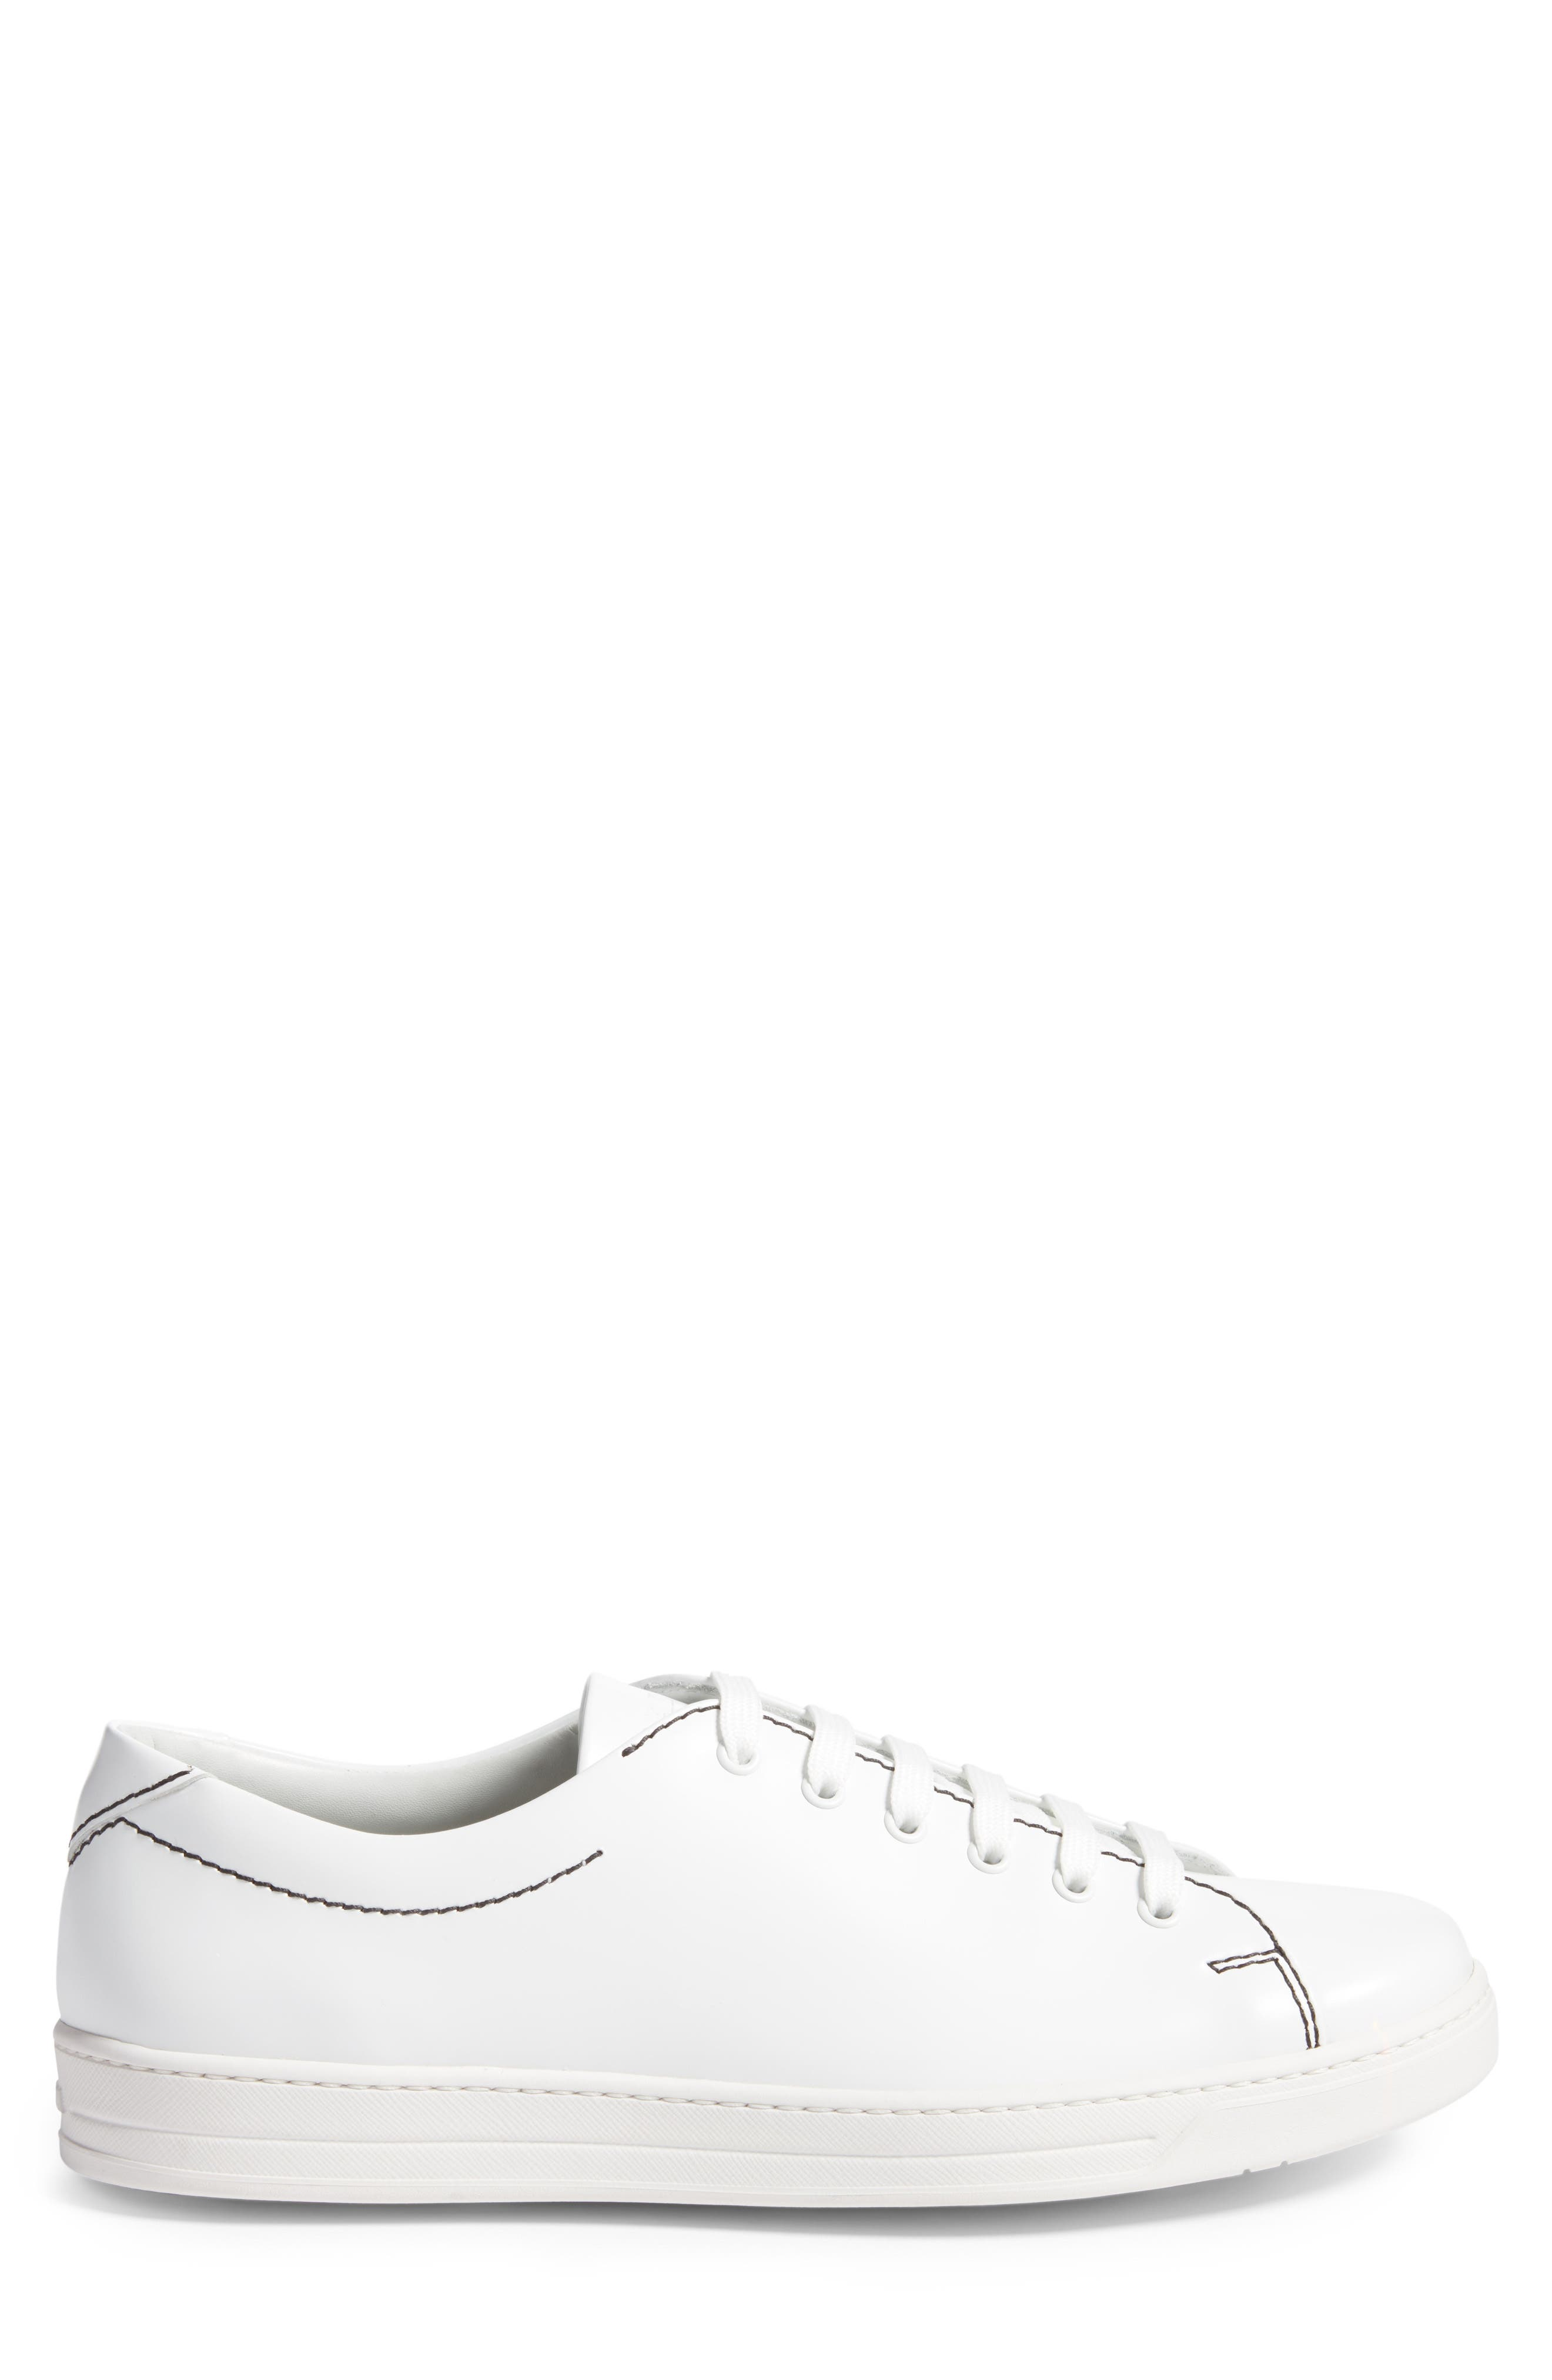 Alternate Image 3  - Prada Linea Rossa Low Top Sneaker (Men)